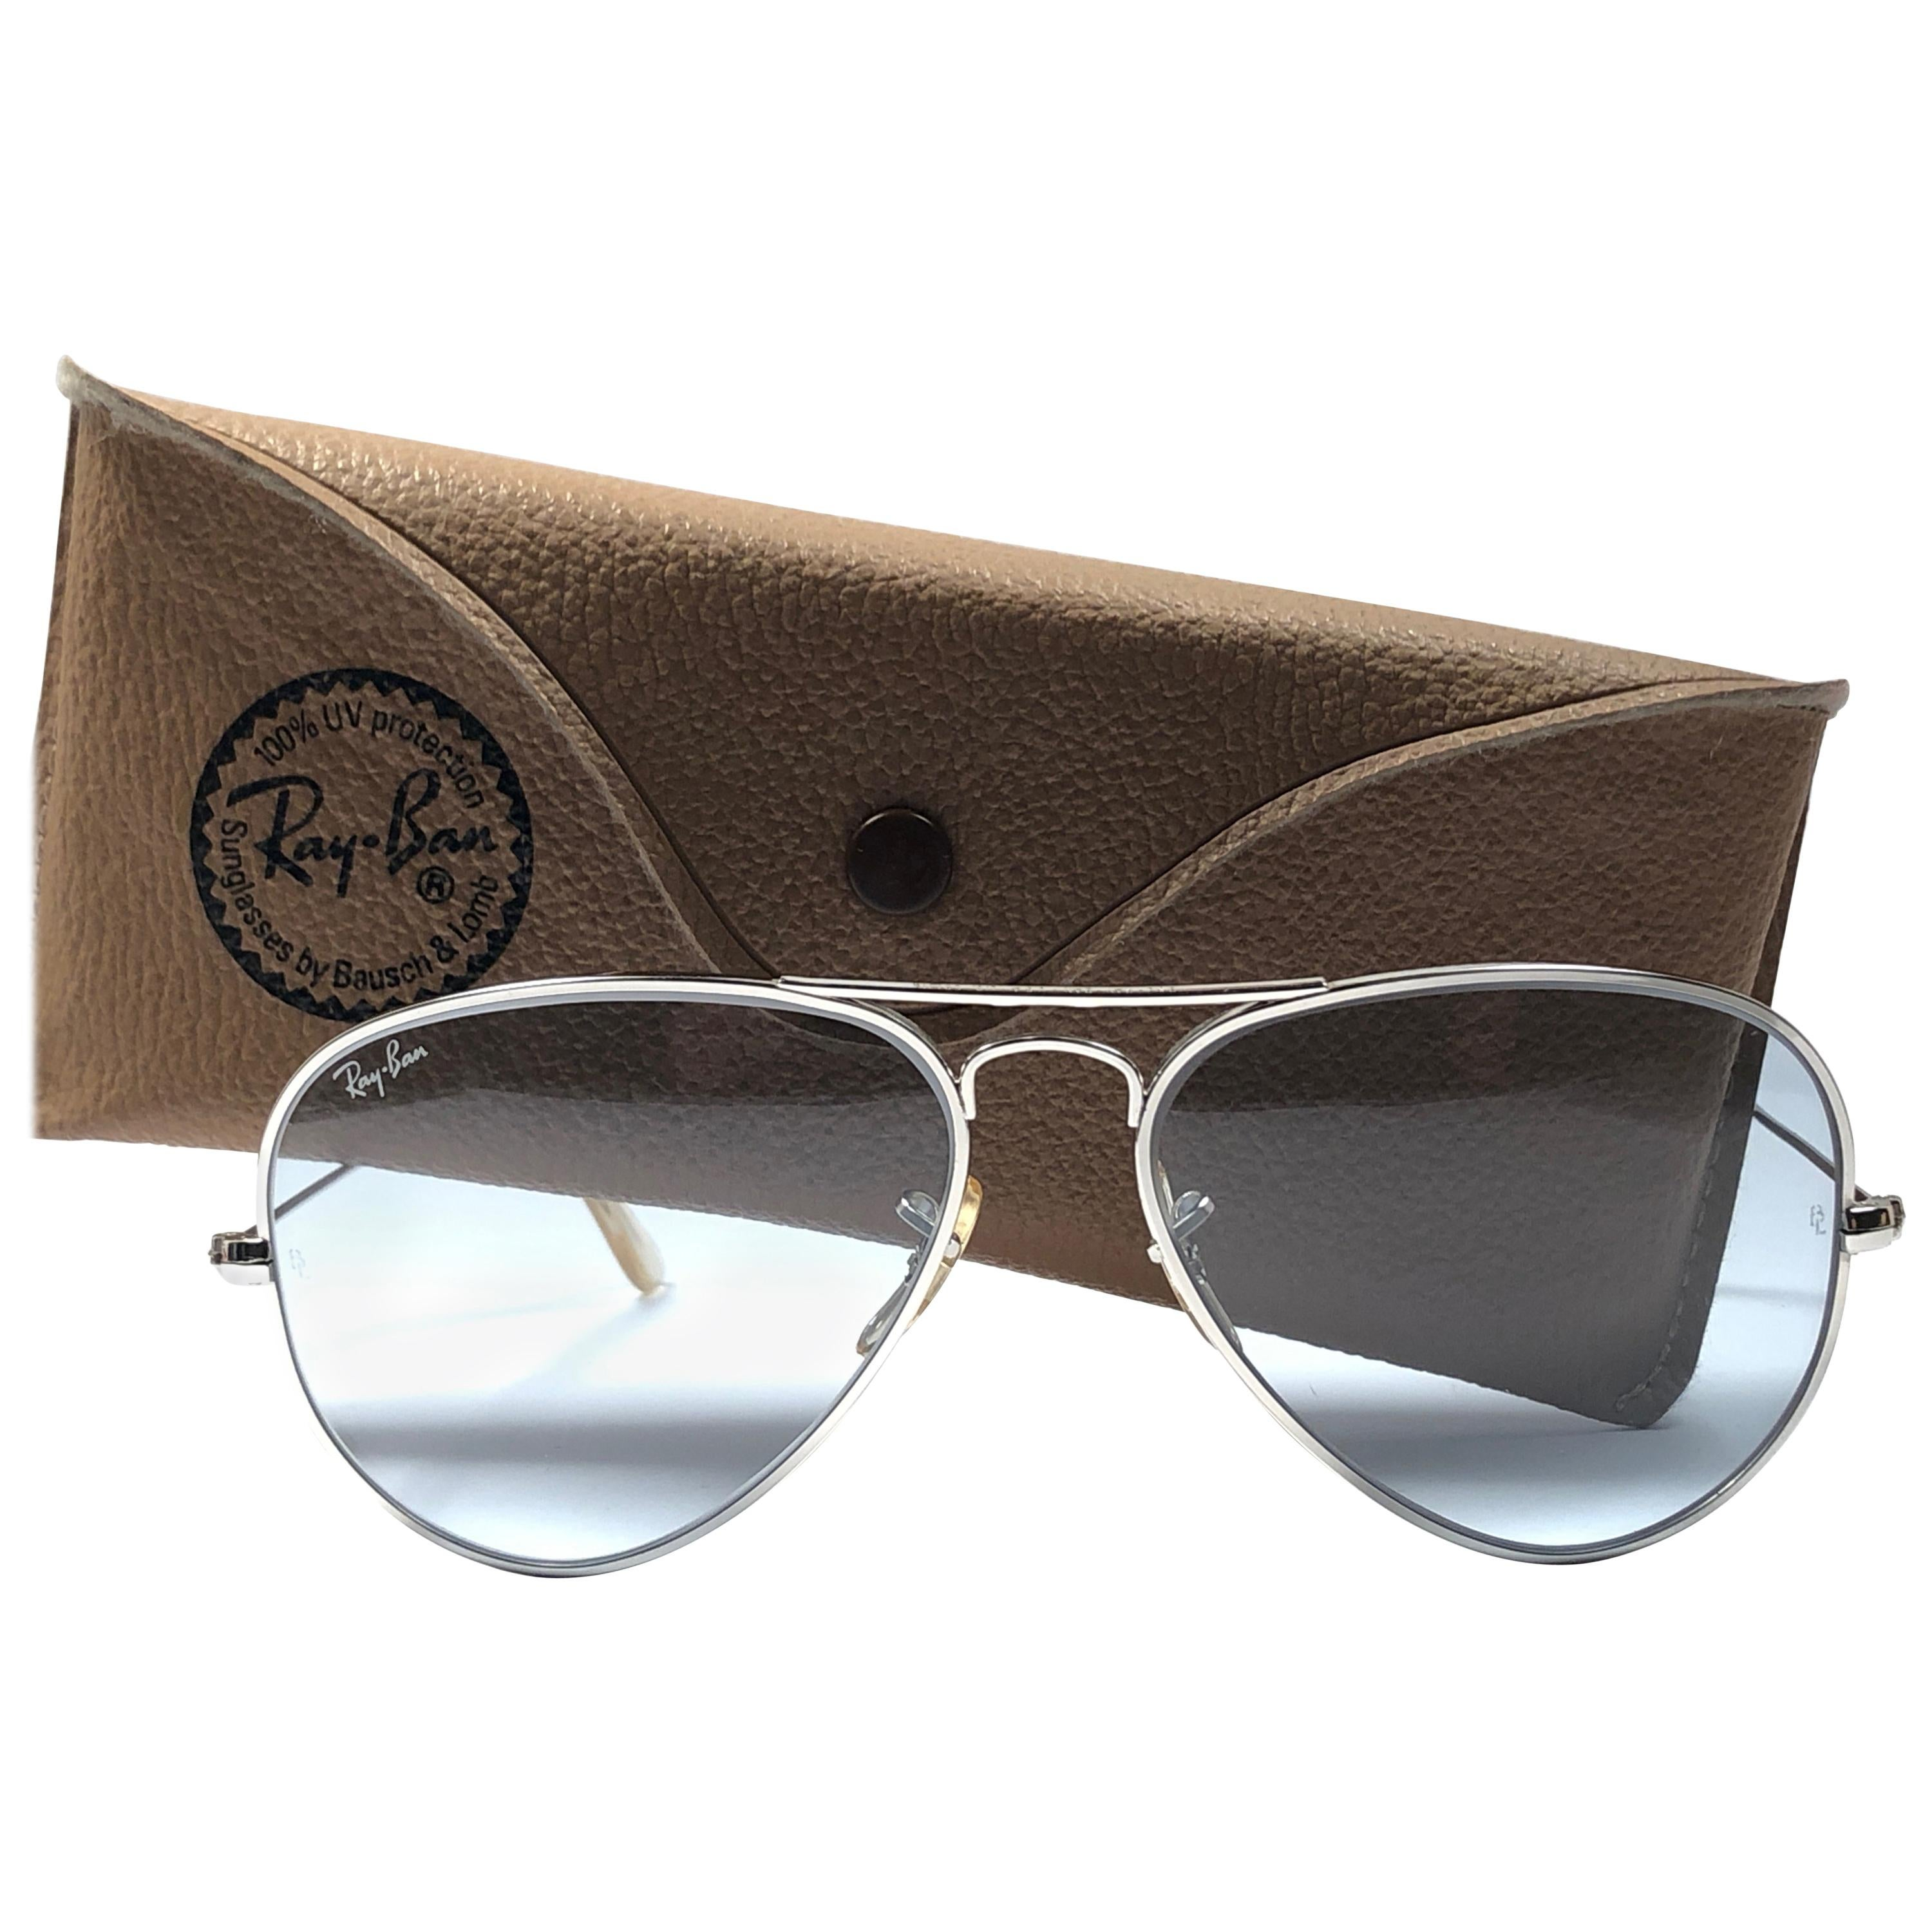 9fe2e9d3b0 Vintage Ray-Ban Sunglasses - 149 For Sale at 1stdibs